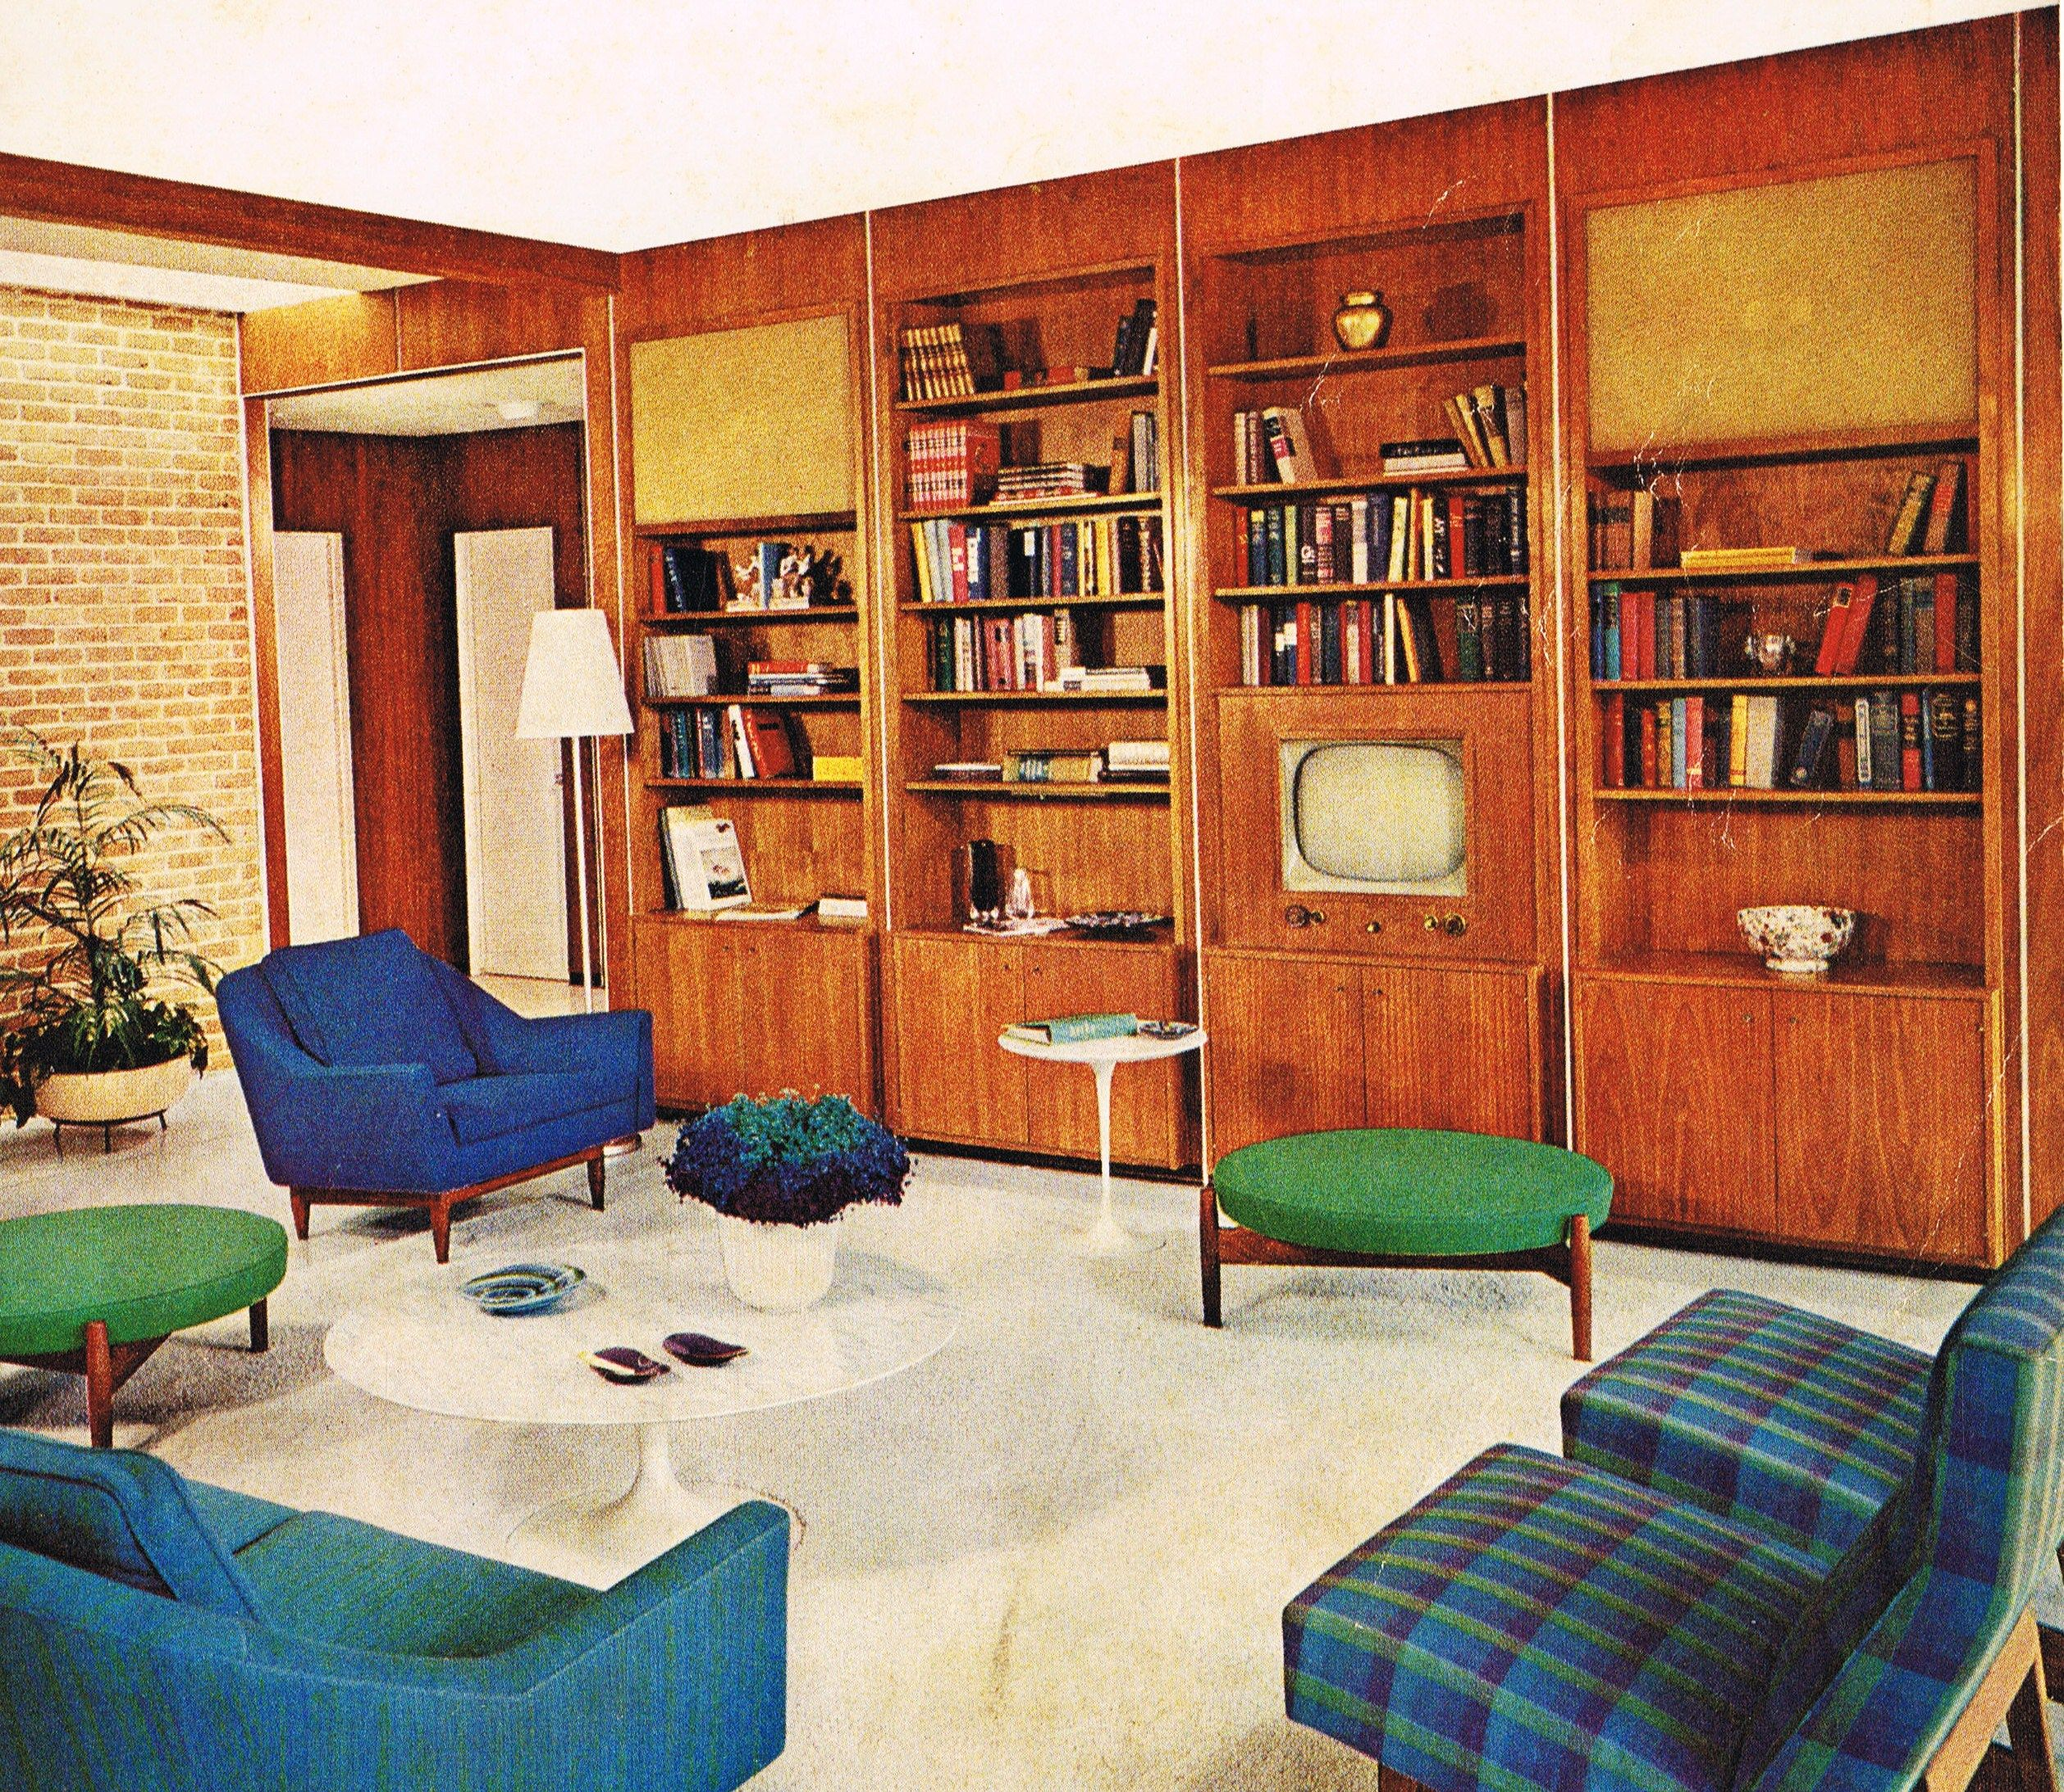 60's Wall Unit With Built-in TV